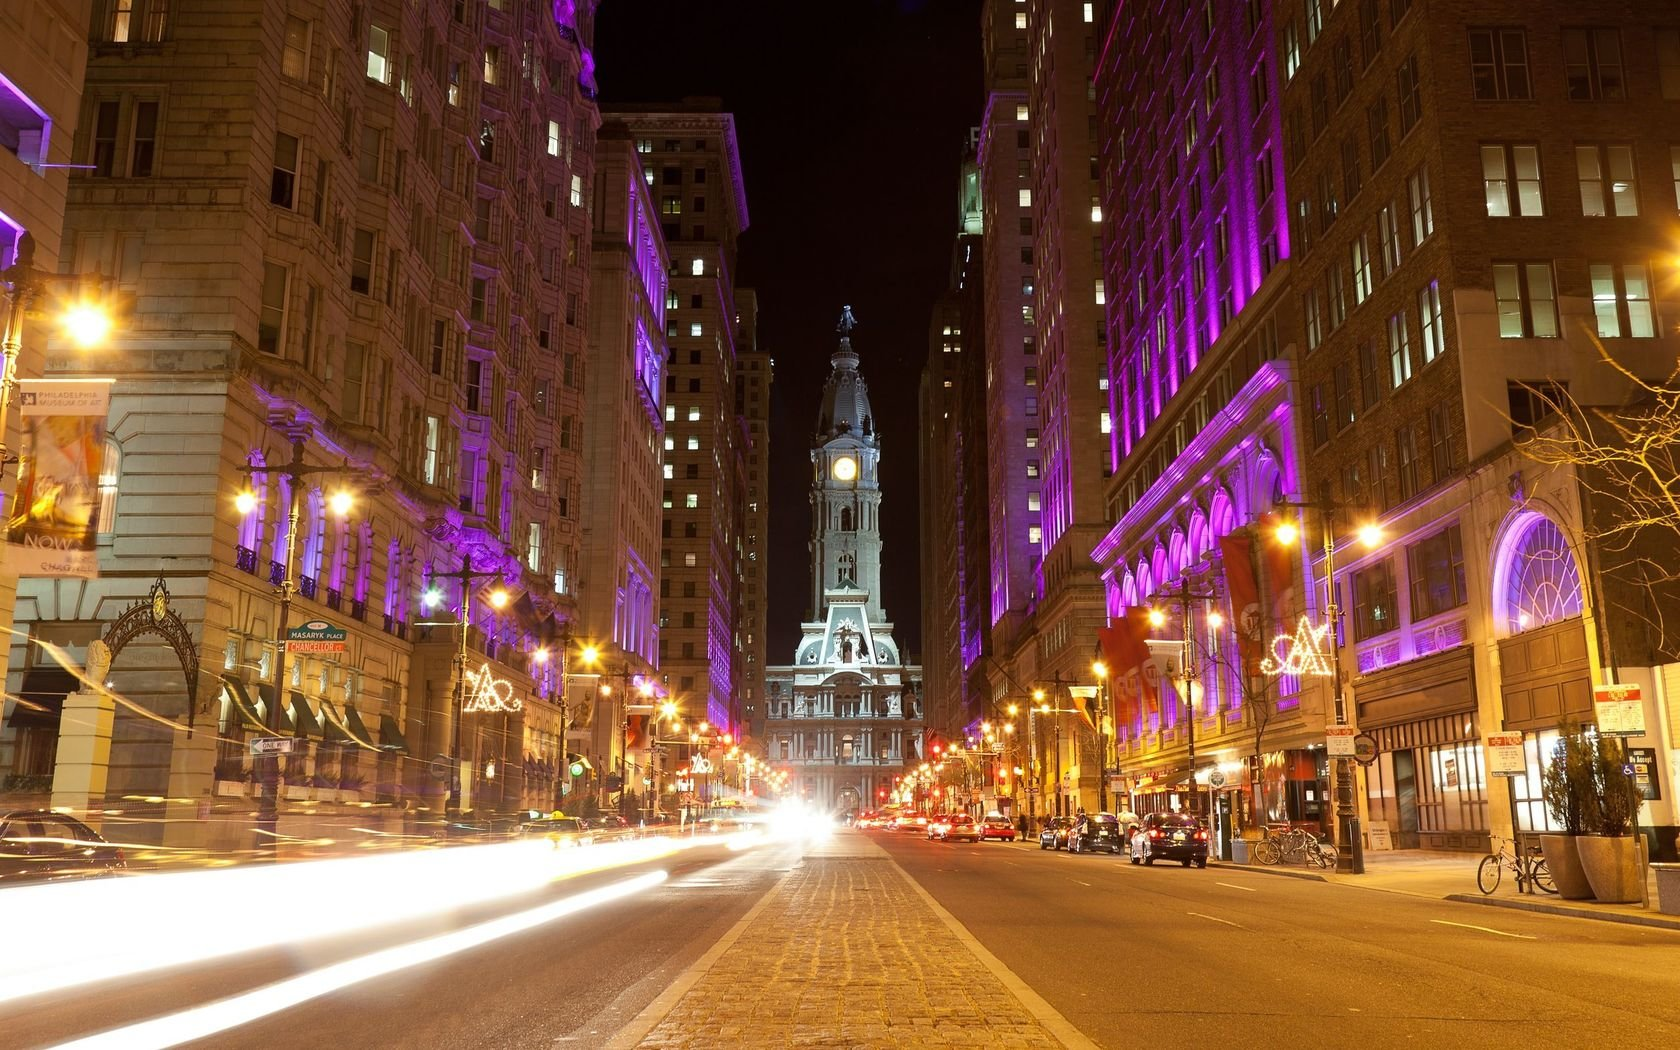 high resolution philadelphia hd 1680x1050 wallpaper id:486379 for